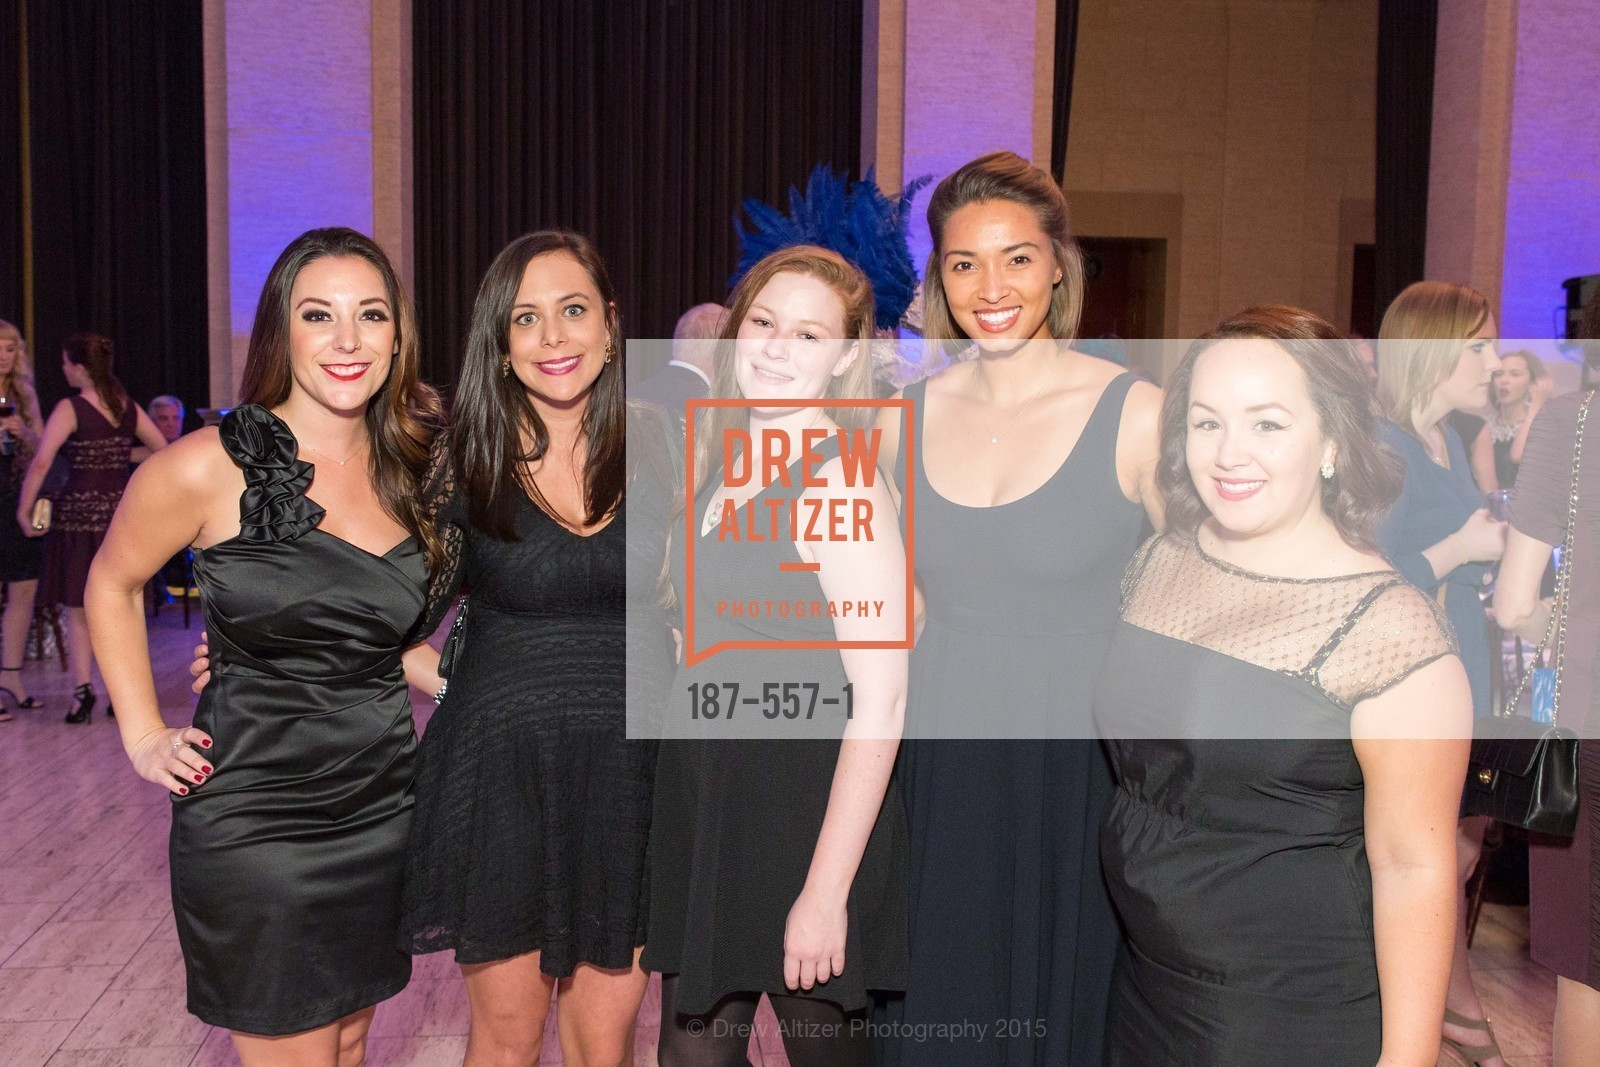 Jen Hajnal, Becca Arruabarrena, Jenna Overman, Kaila Kero, Katie Balestreri, Cirque du Soiree 2015, The Bentley Reserve. 2525 Van Ness St, November 19th, 2015,Drew Altizer, Drew Altizer Photography, full-service agency, private events, San Francisco photographer, photographer california